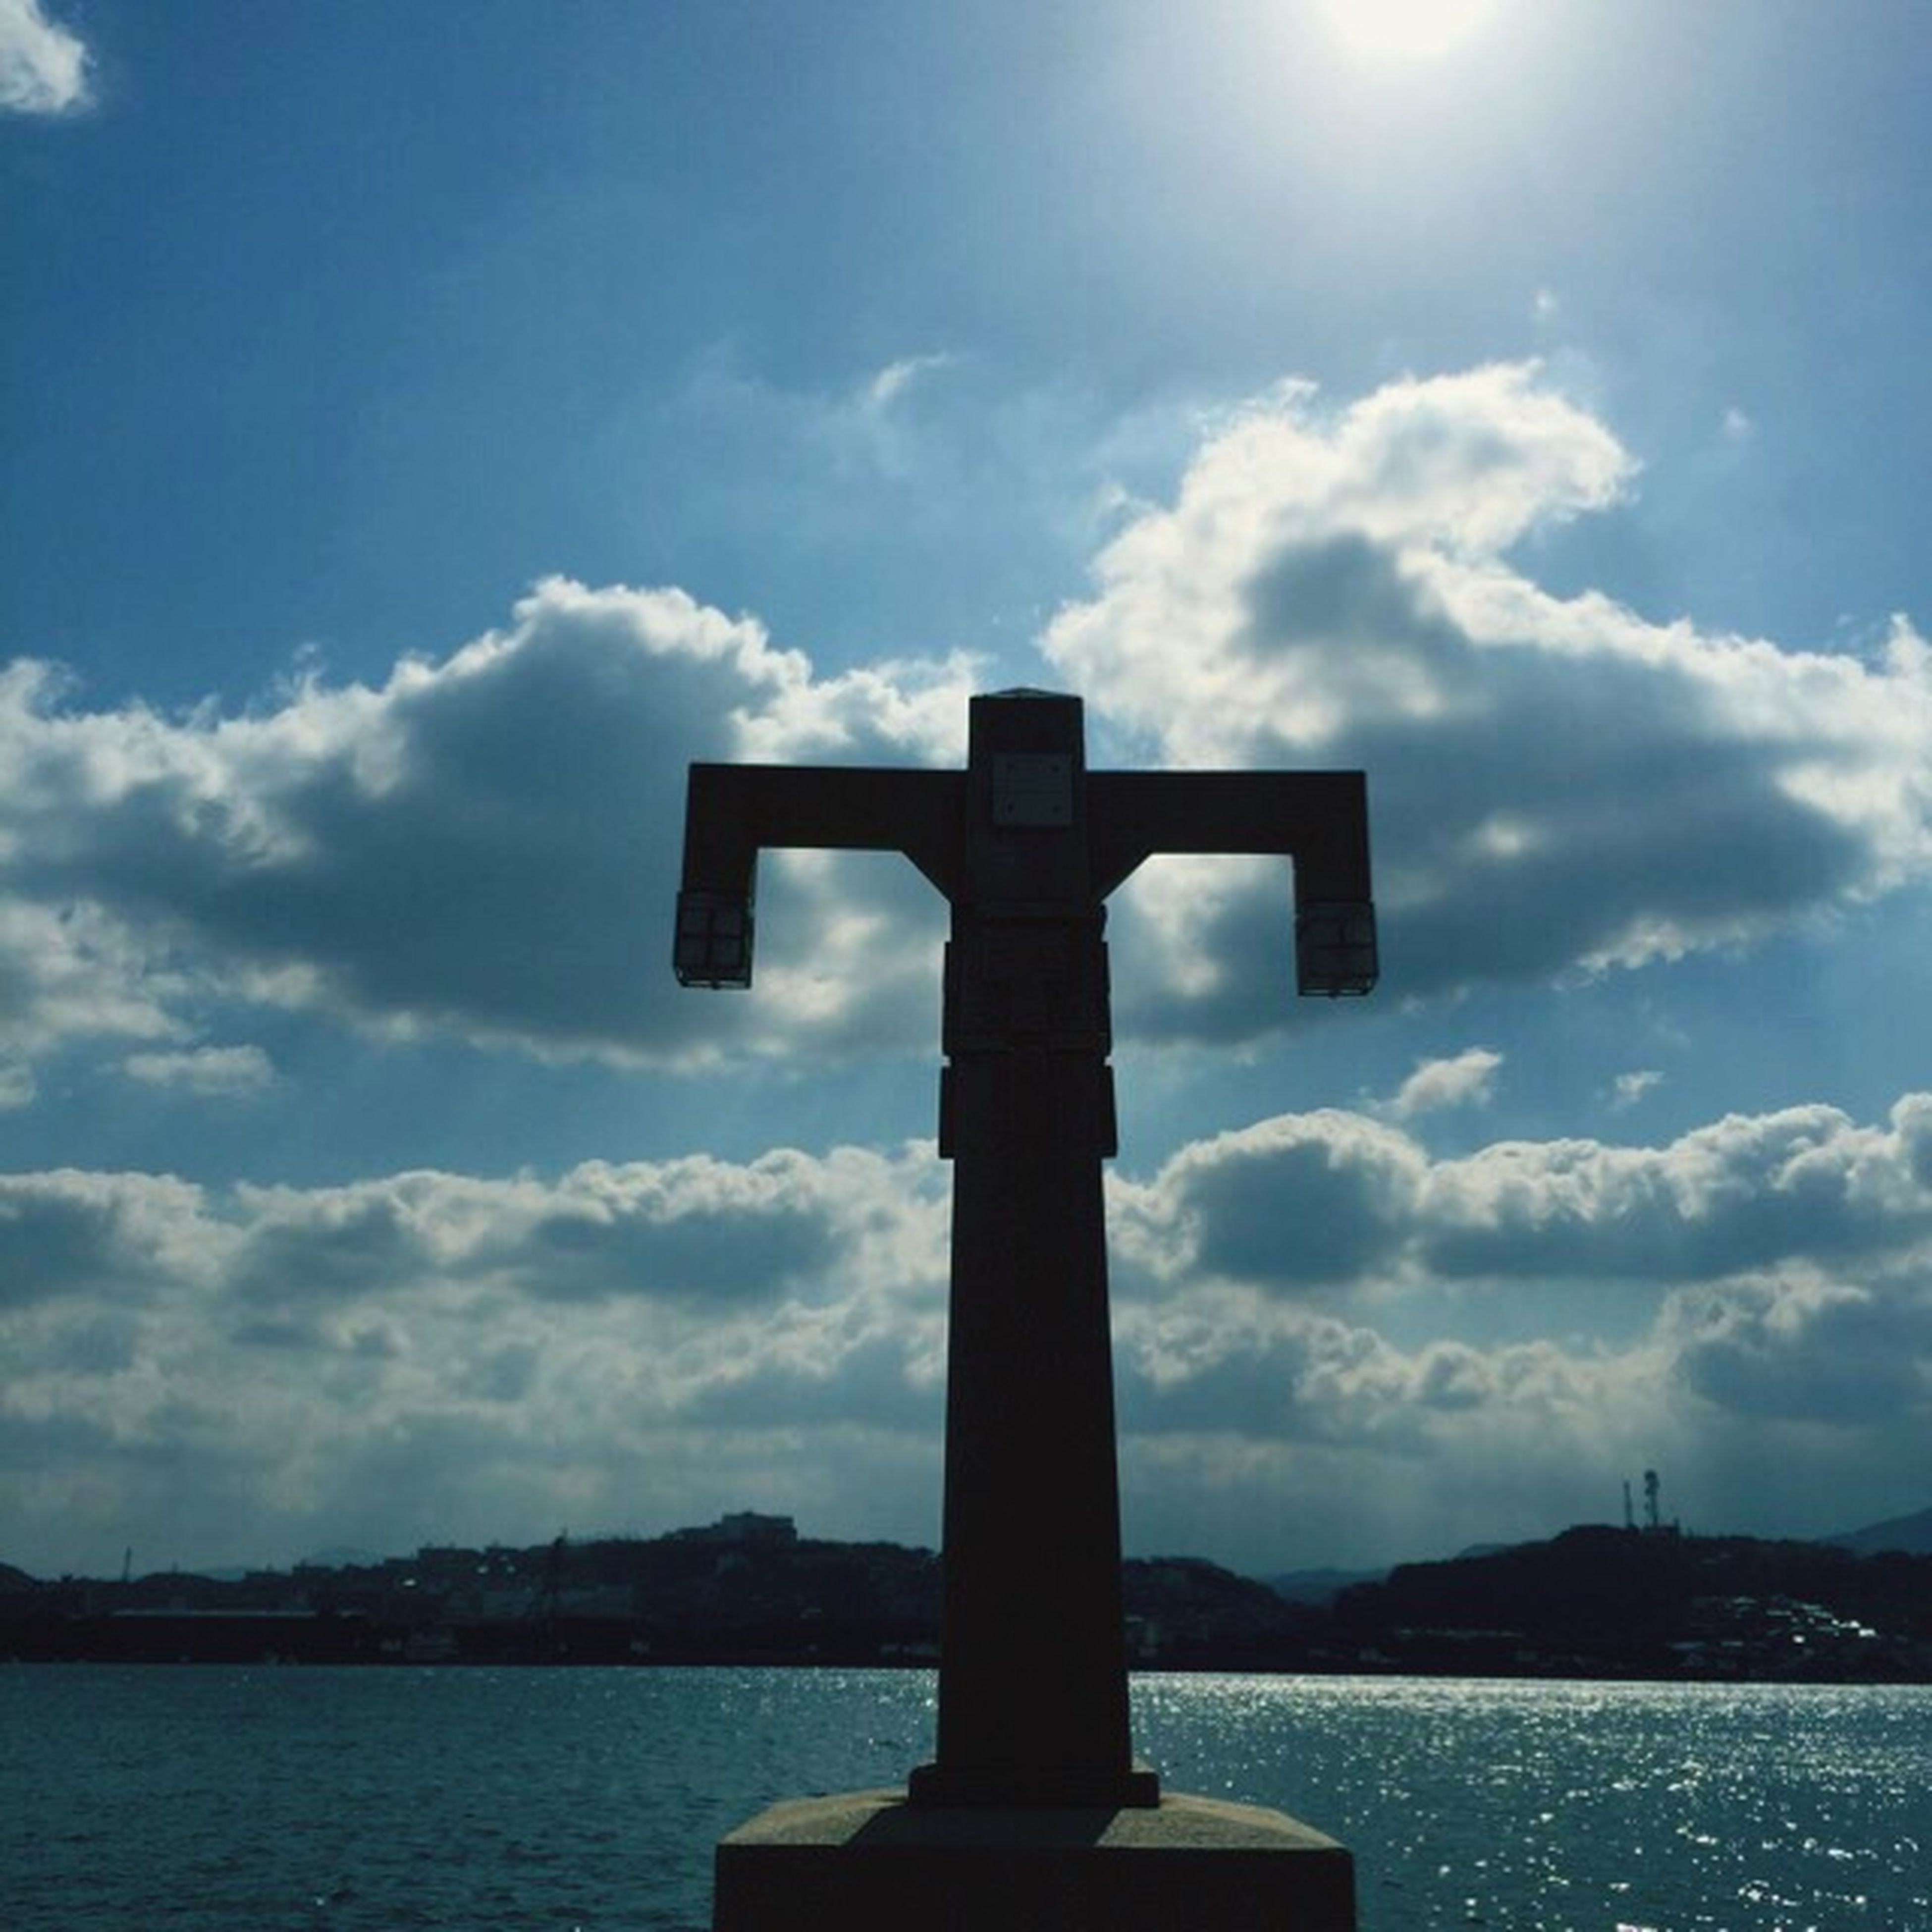 sky, human representation, water, religion, cross, cloud - sky, spirituality, silhouette, sculpture, statue, cloud, no people, guidance, art and craft, outdoors, art, low angle view